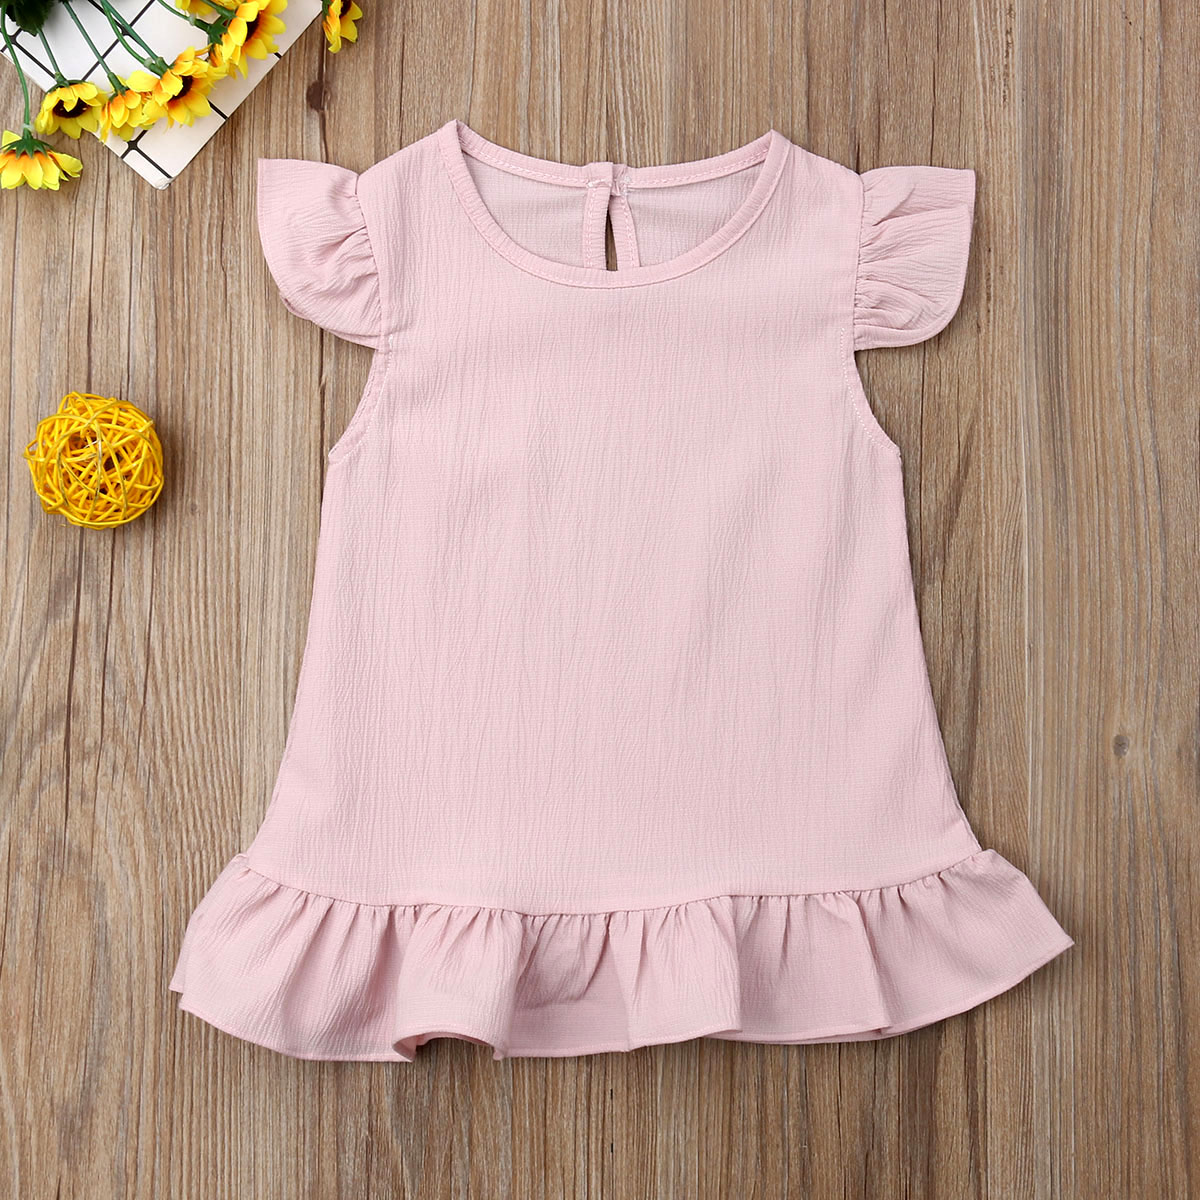 2-6Years Baby Summer Clothing Infant Kid Baby Girl Solid Dress Solid Princess Gown Fly Sleeve Ruffle Party Chiffon Dresses